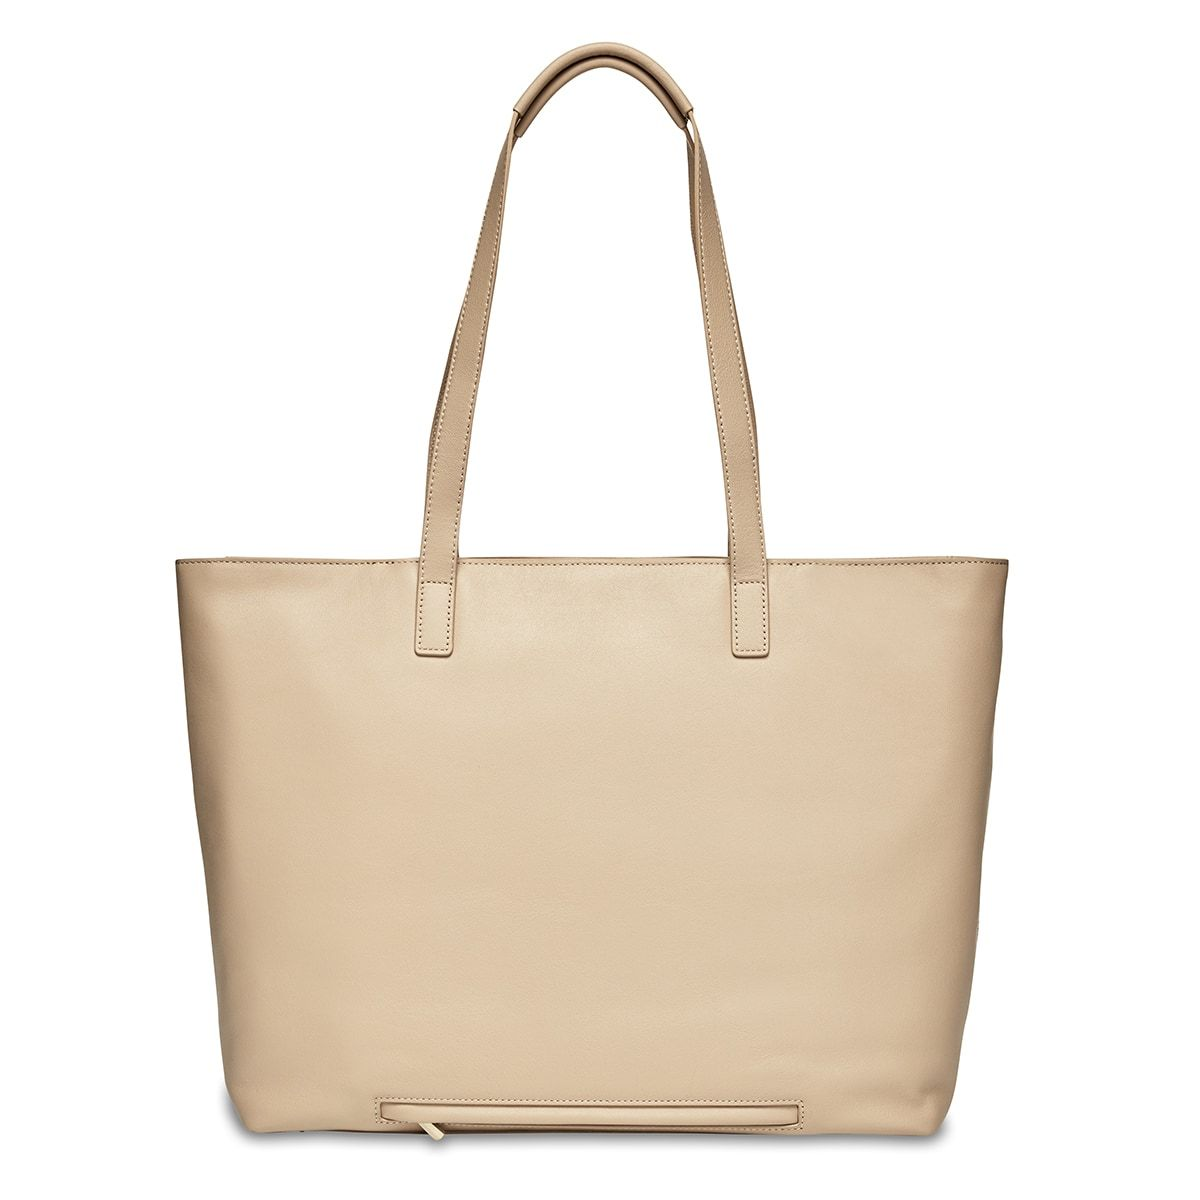 "Maddox Leather Laptop Tote Bag - 15"" -  Trench Beige 